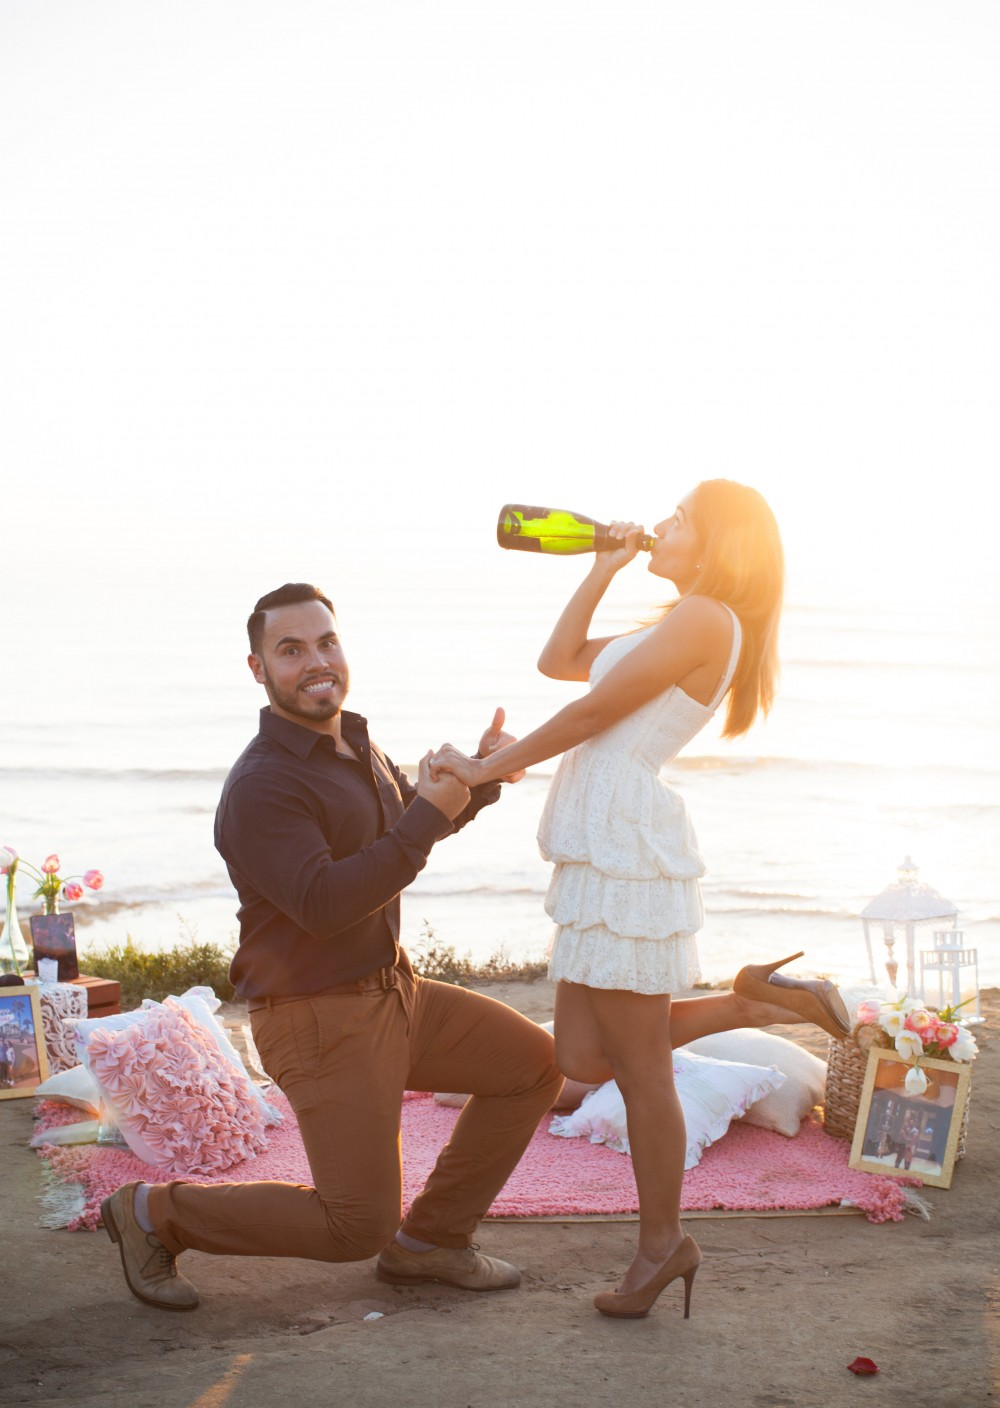 Image 9 of Diego and Jessica's Cliff Marriage Proposal at Sunset